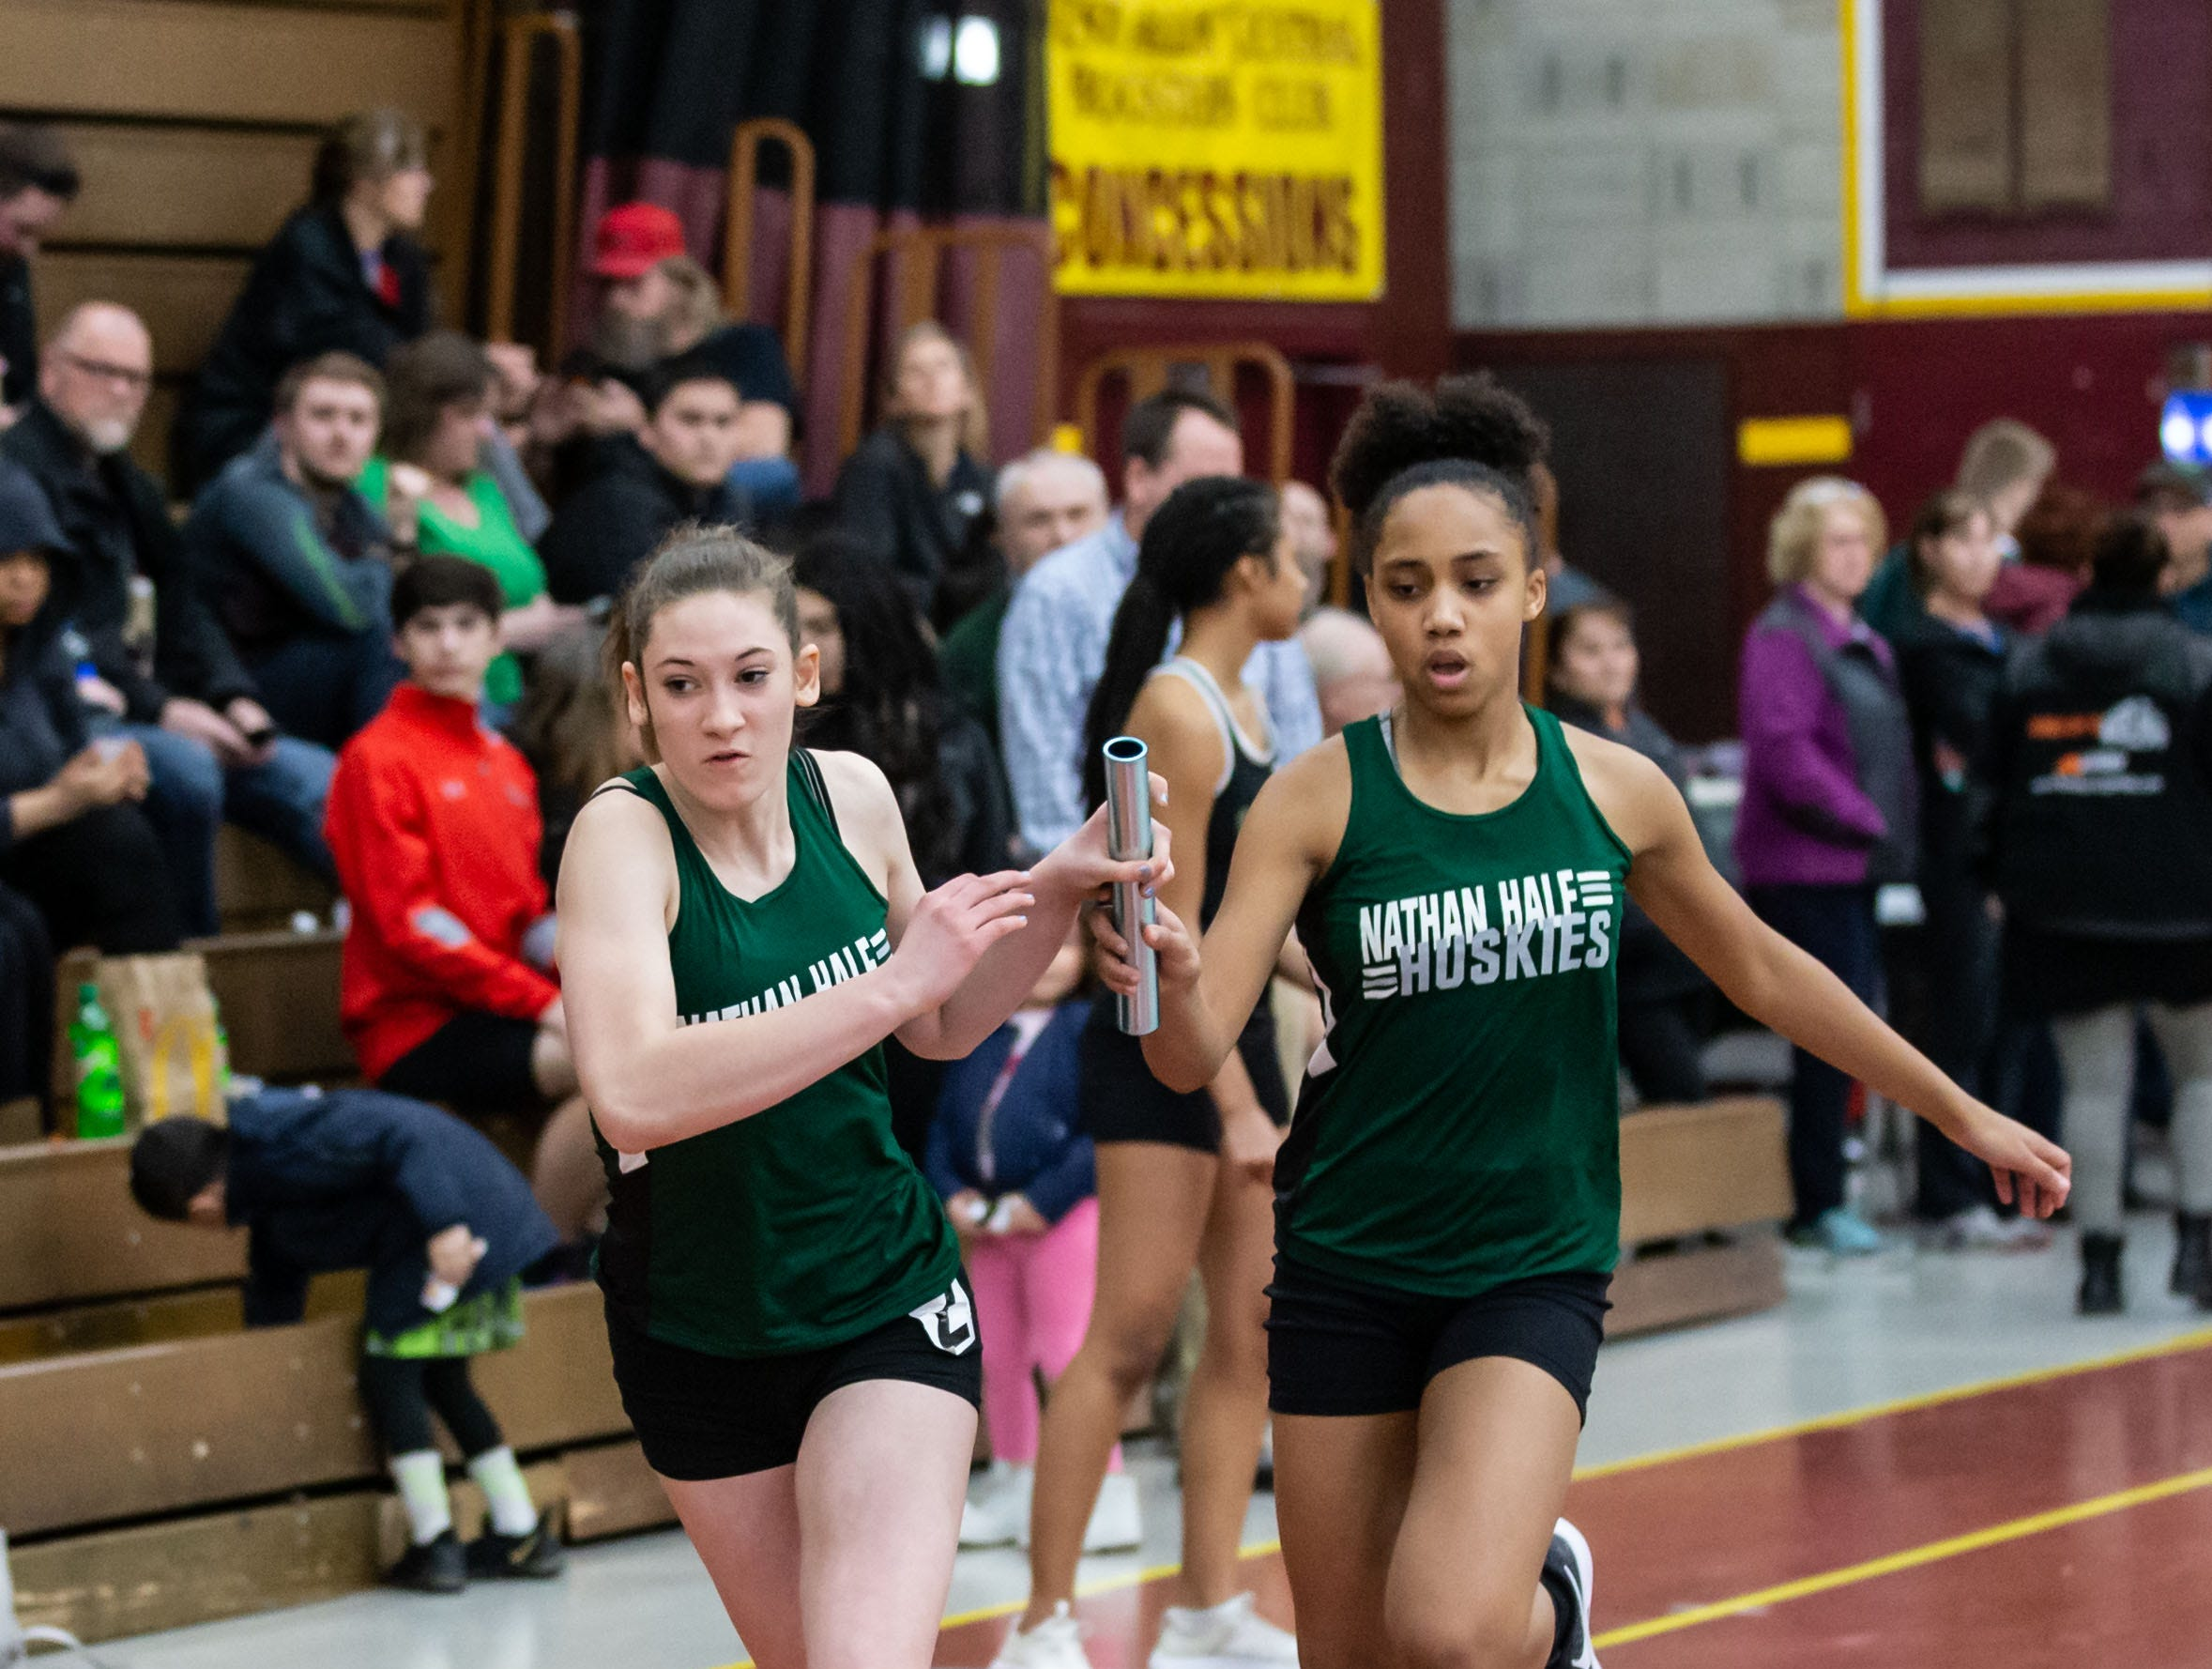 West Allis Nathan Hale's Julia Klein takes the baton from Alahna Patterson in the 4x160 meter relay while competing at the Reinhard Bulldog Relays hosted by West Allis Central on Friday, March 15, 2019.